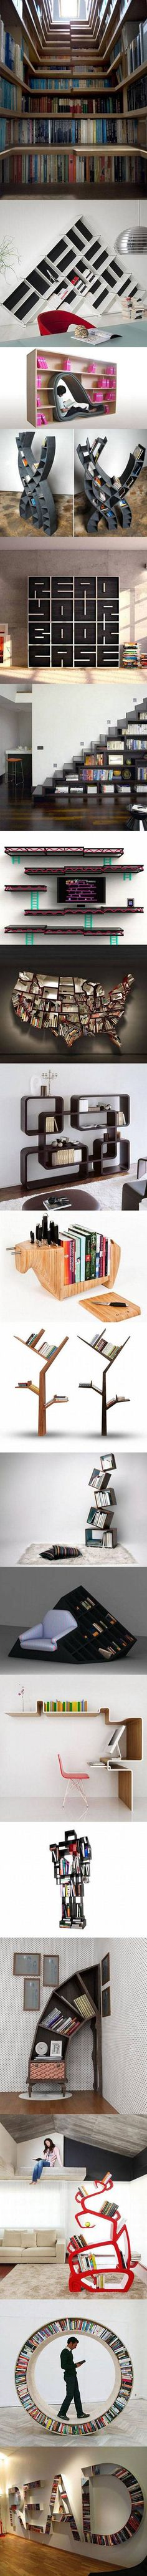 Here are some cool and geeky bookcase designs that think outside the box.